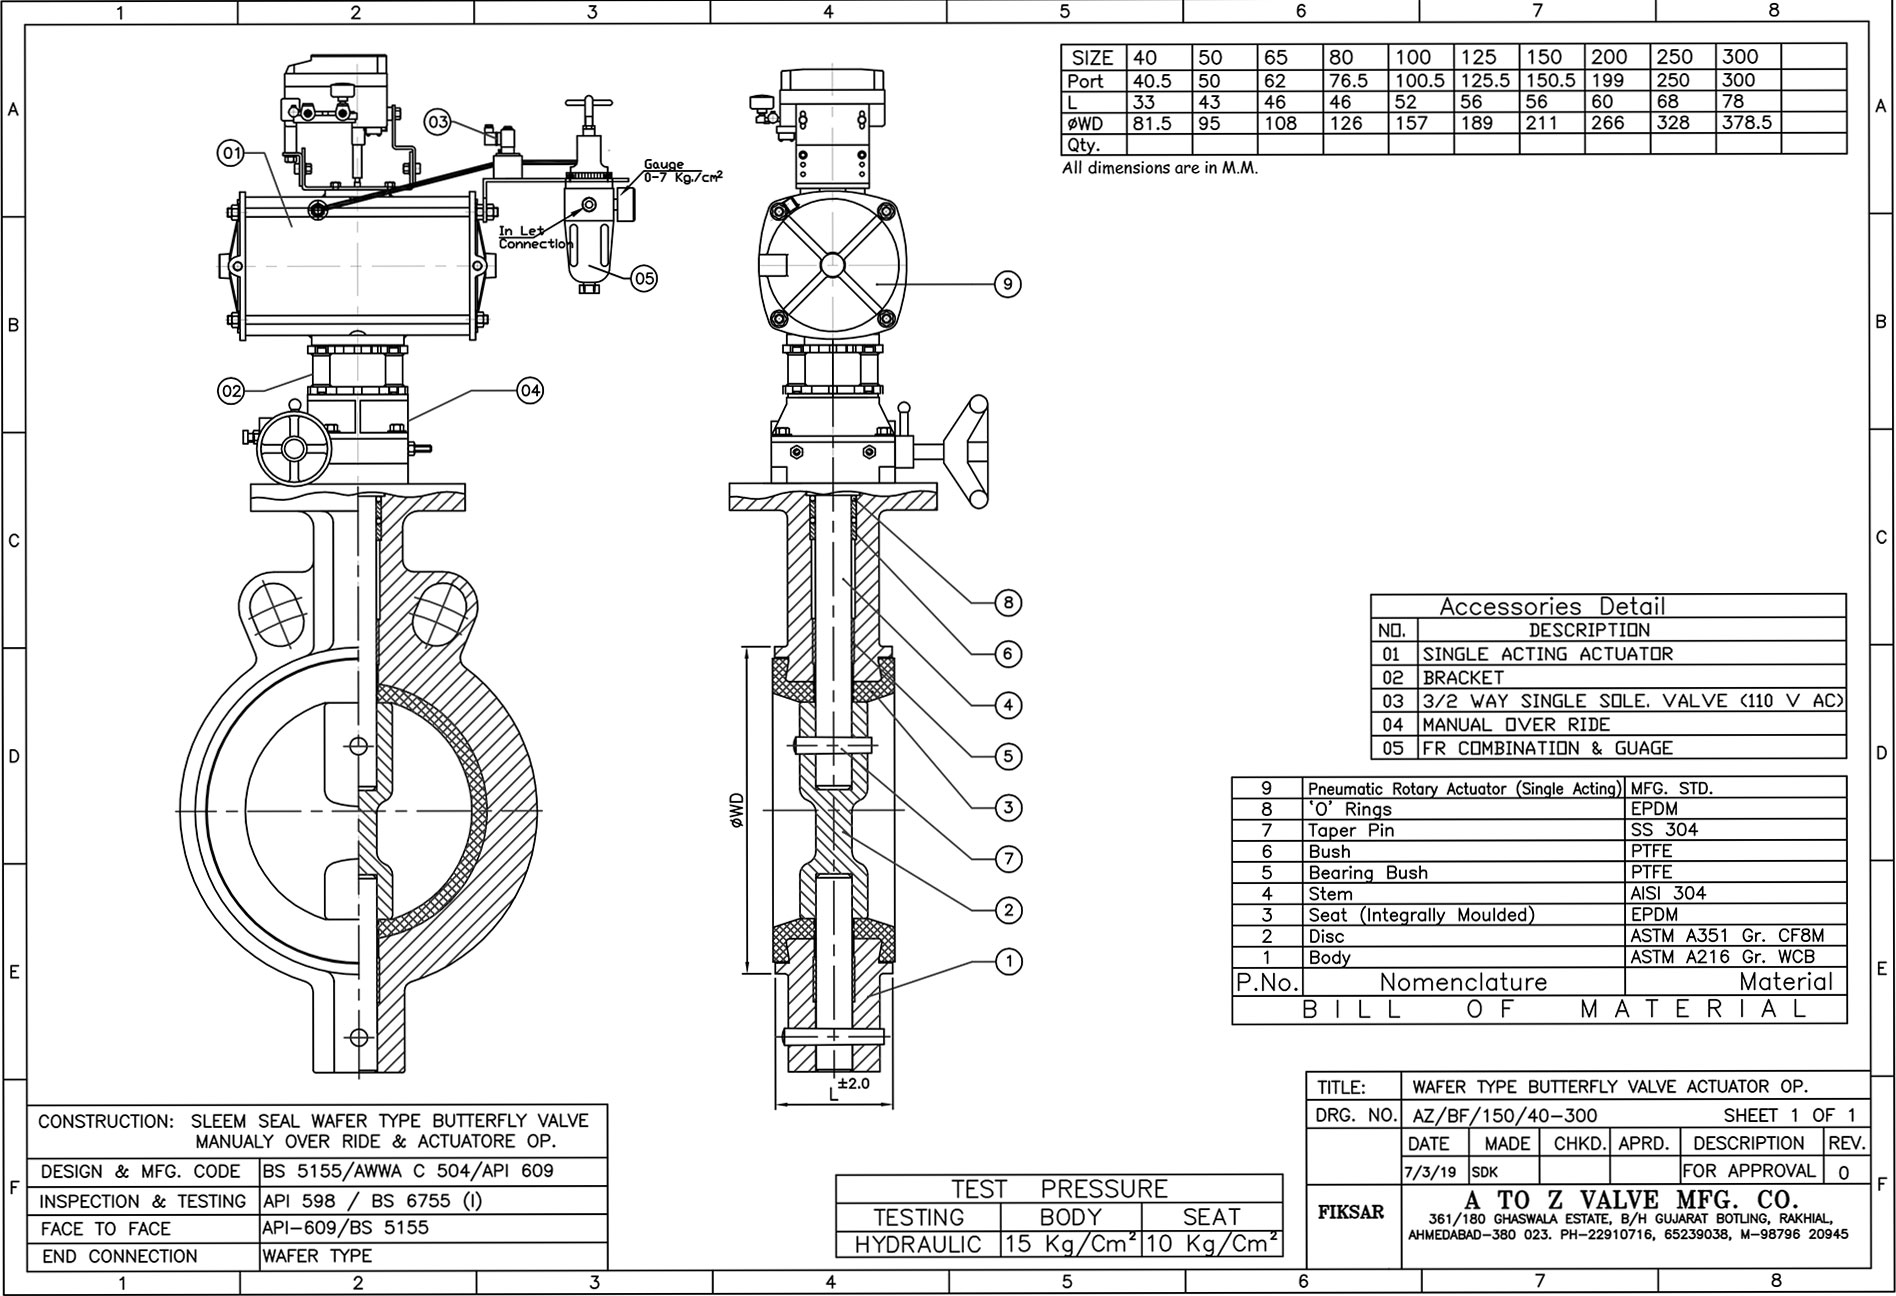 Butterfly Valve Pneumatic Actuator Operated